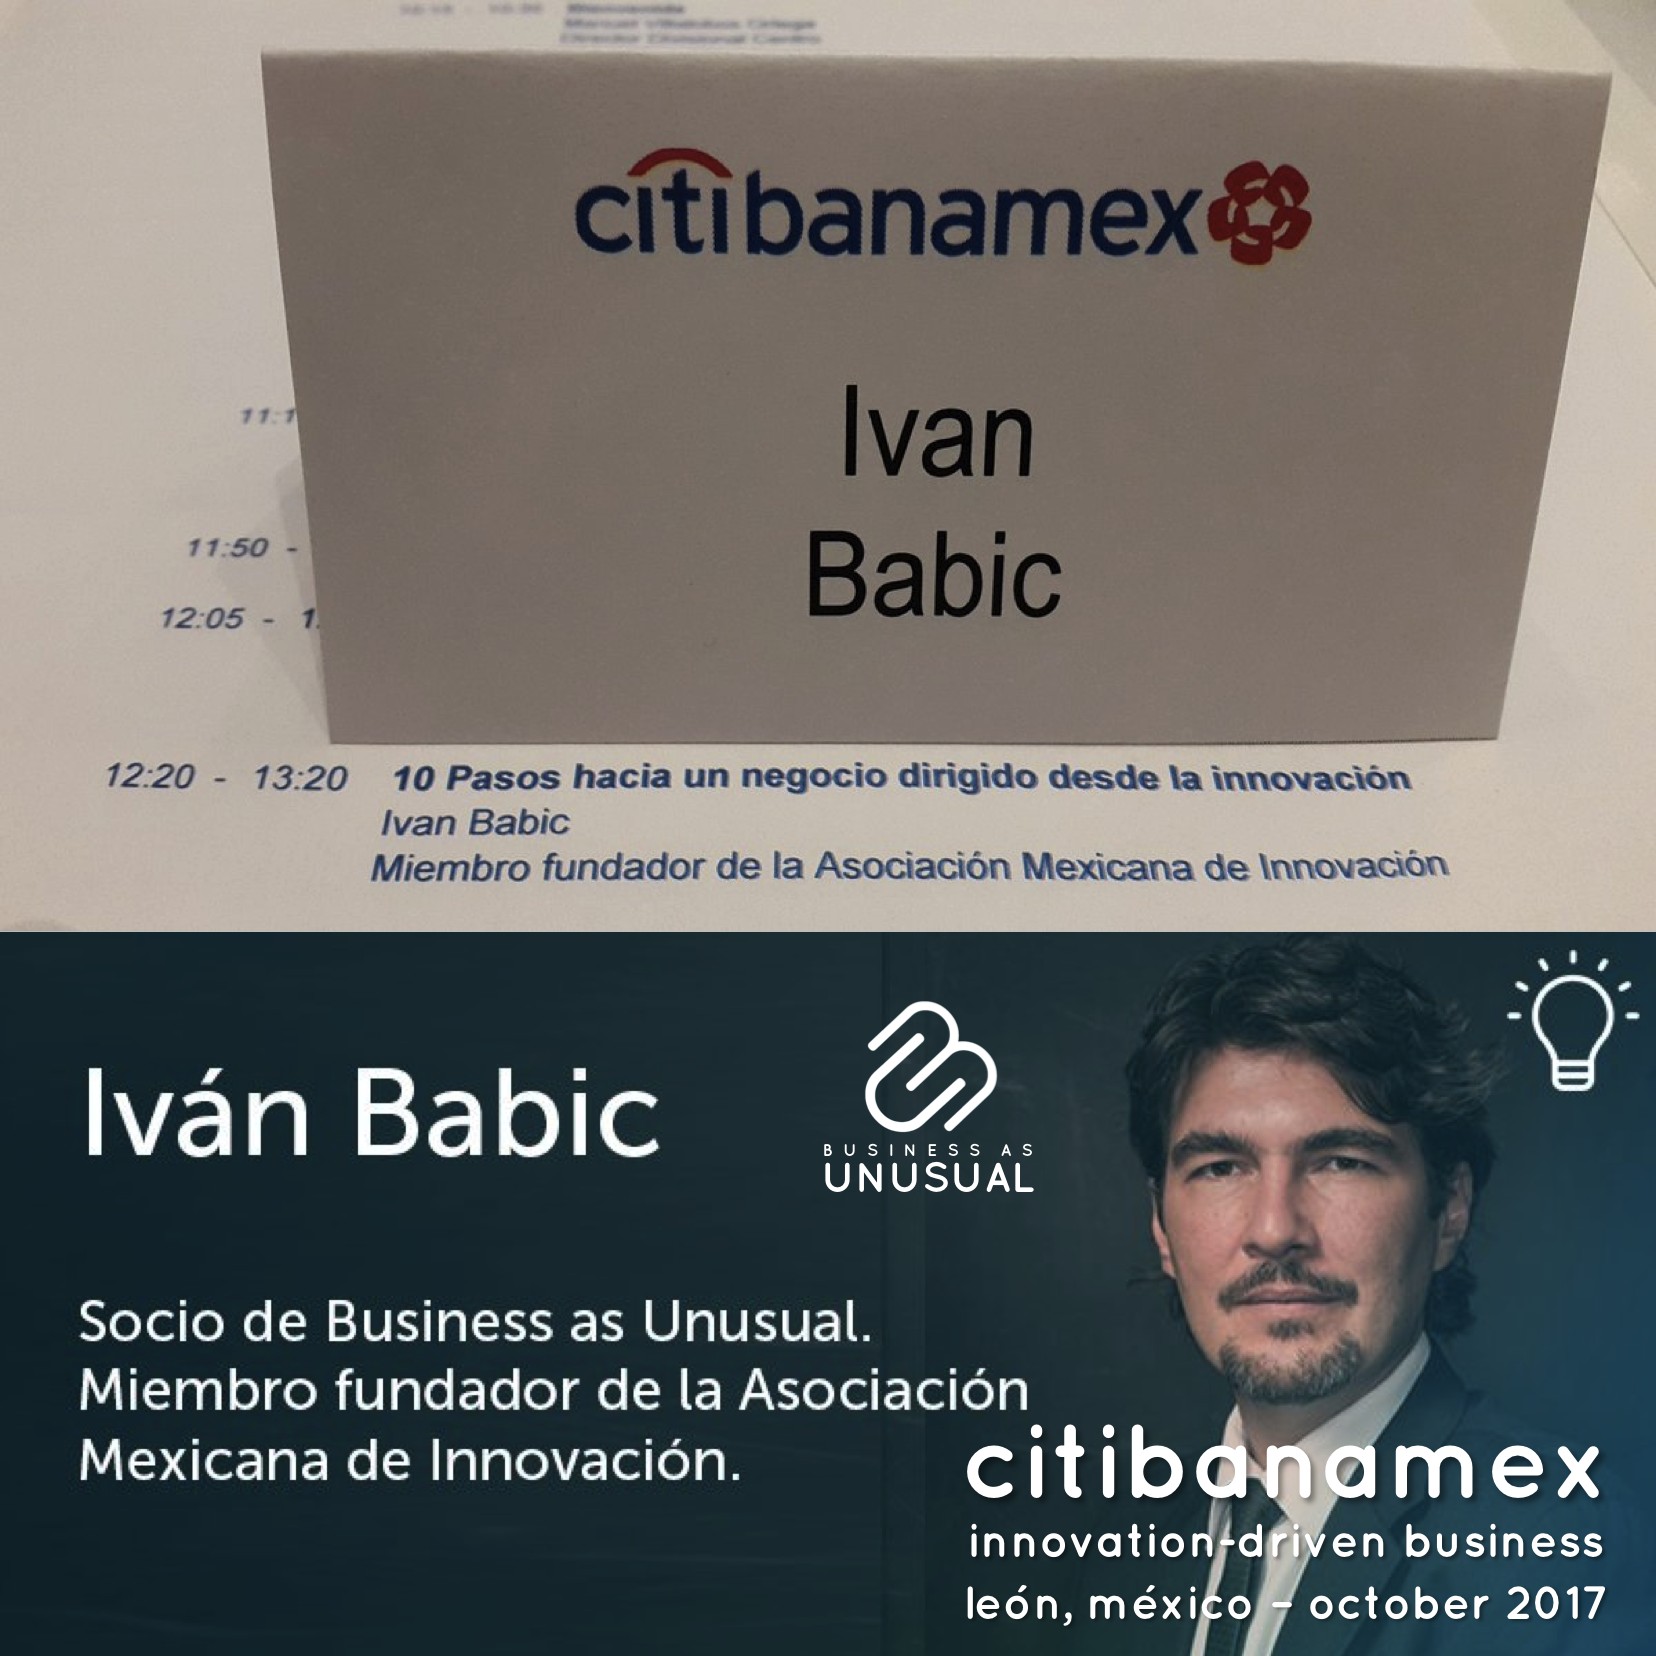 Citibanamex - Innovation-Driven Business - León